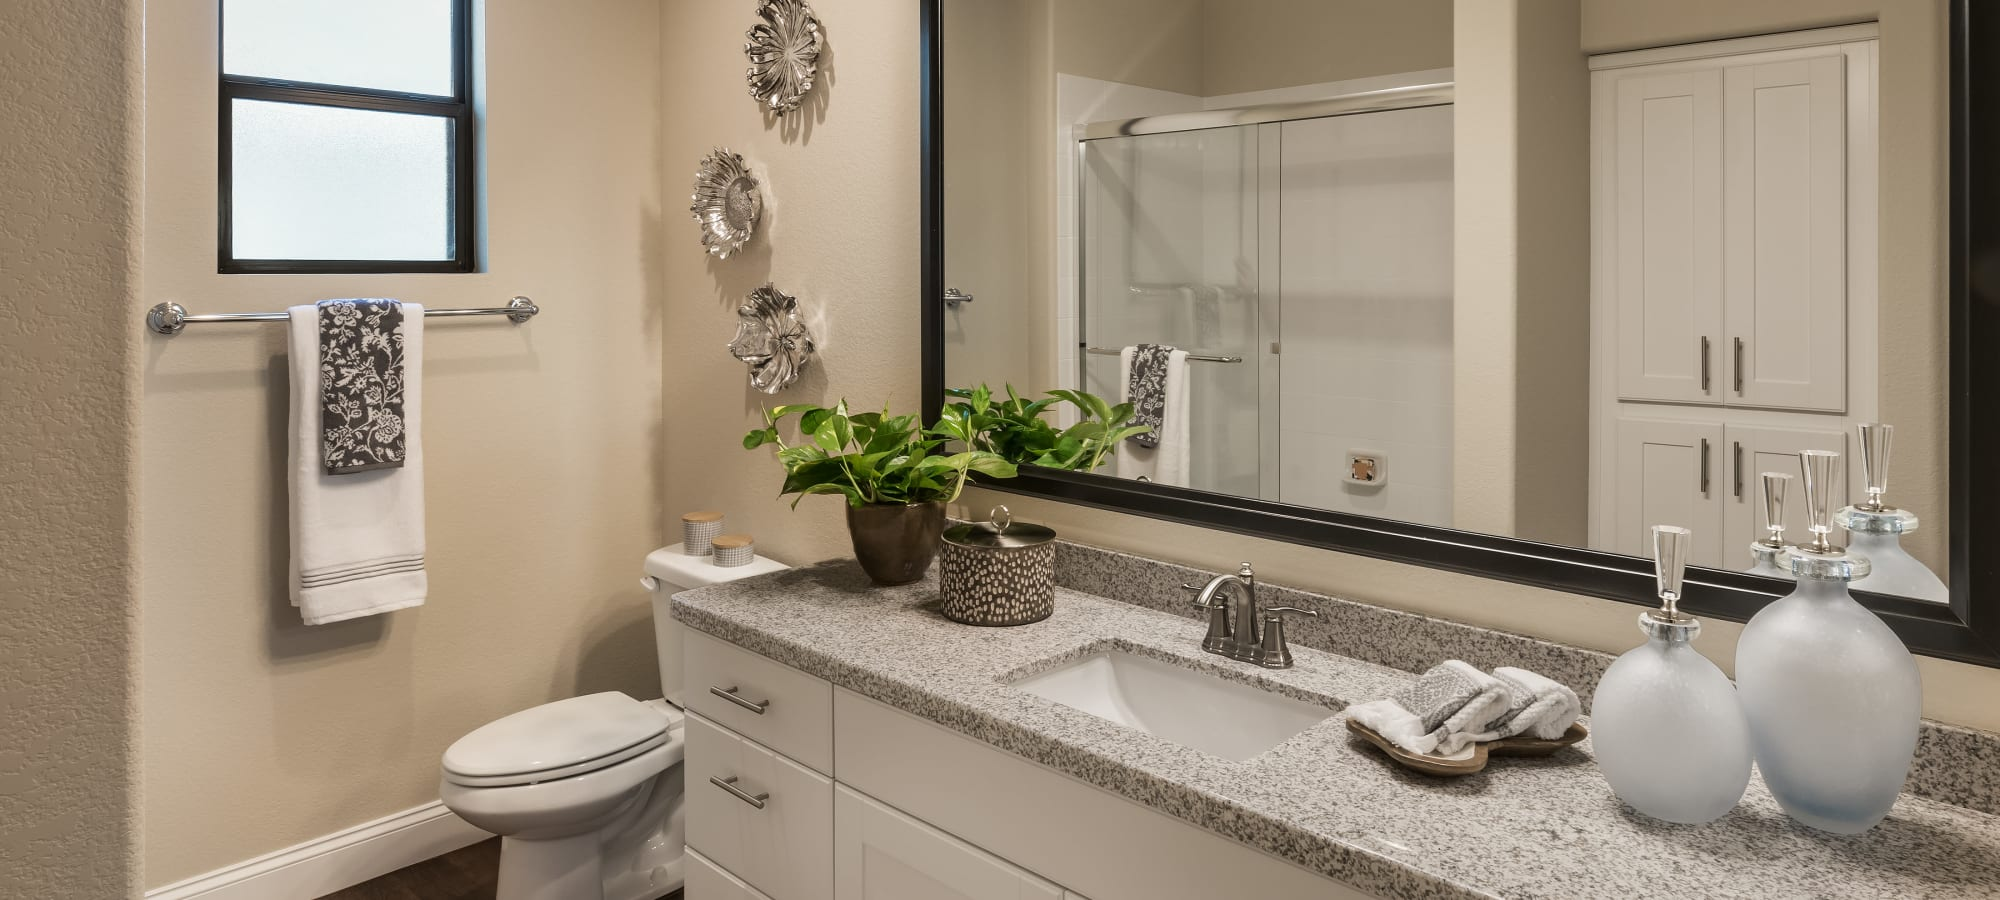 Large vanity mirror and granite countertop in bathroom of model home at San Villante in Mesa, Arizona